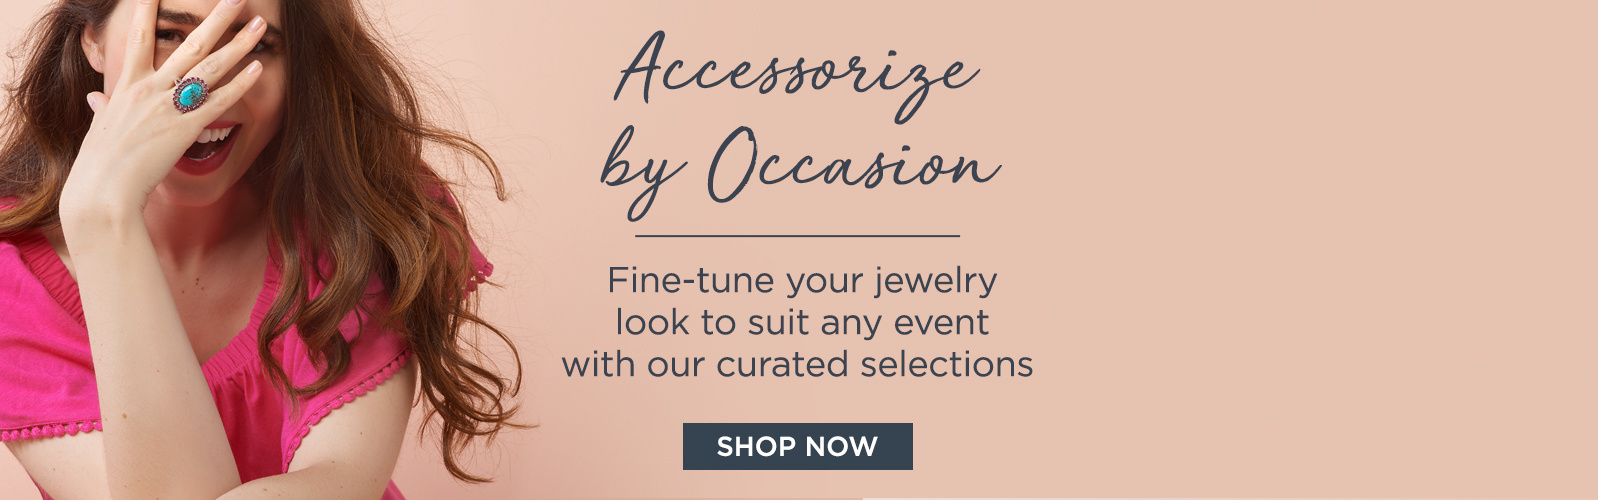 Accessorize by Occasion - Fine-tune your jewelry look to suit any event with our curated selections